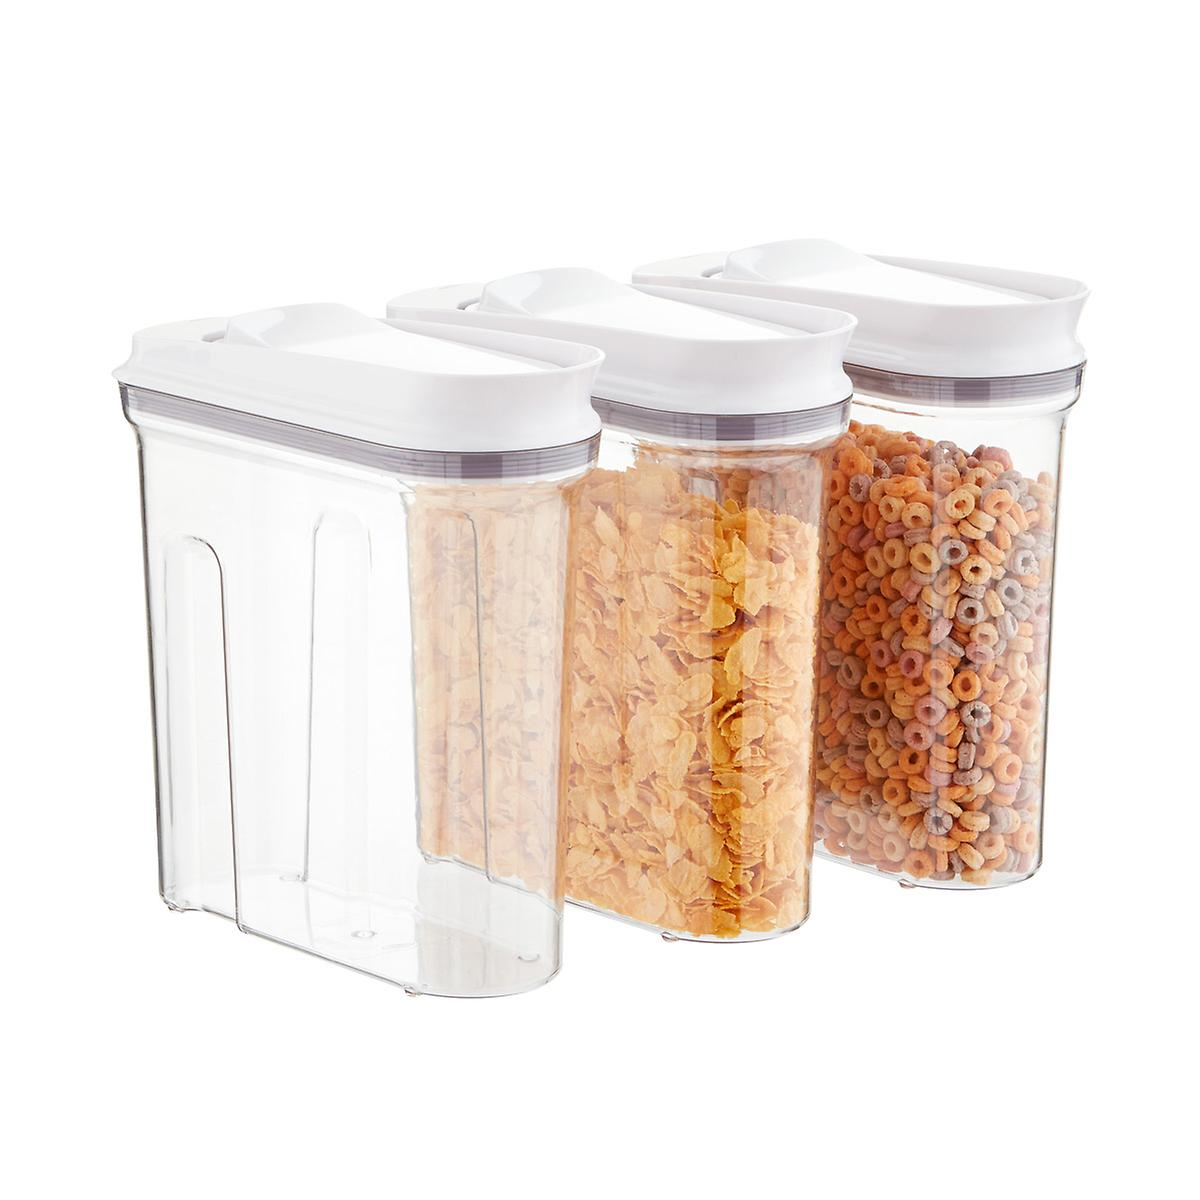 OXO Good Grips POP Cereal Dispensers